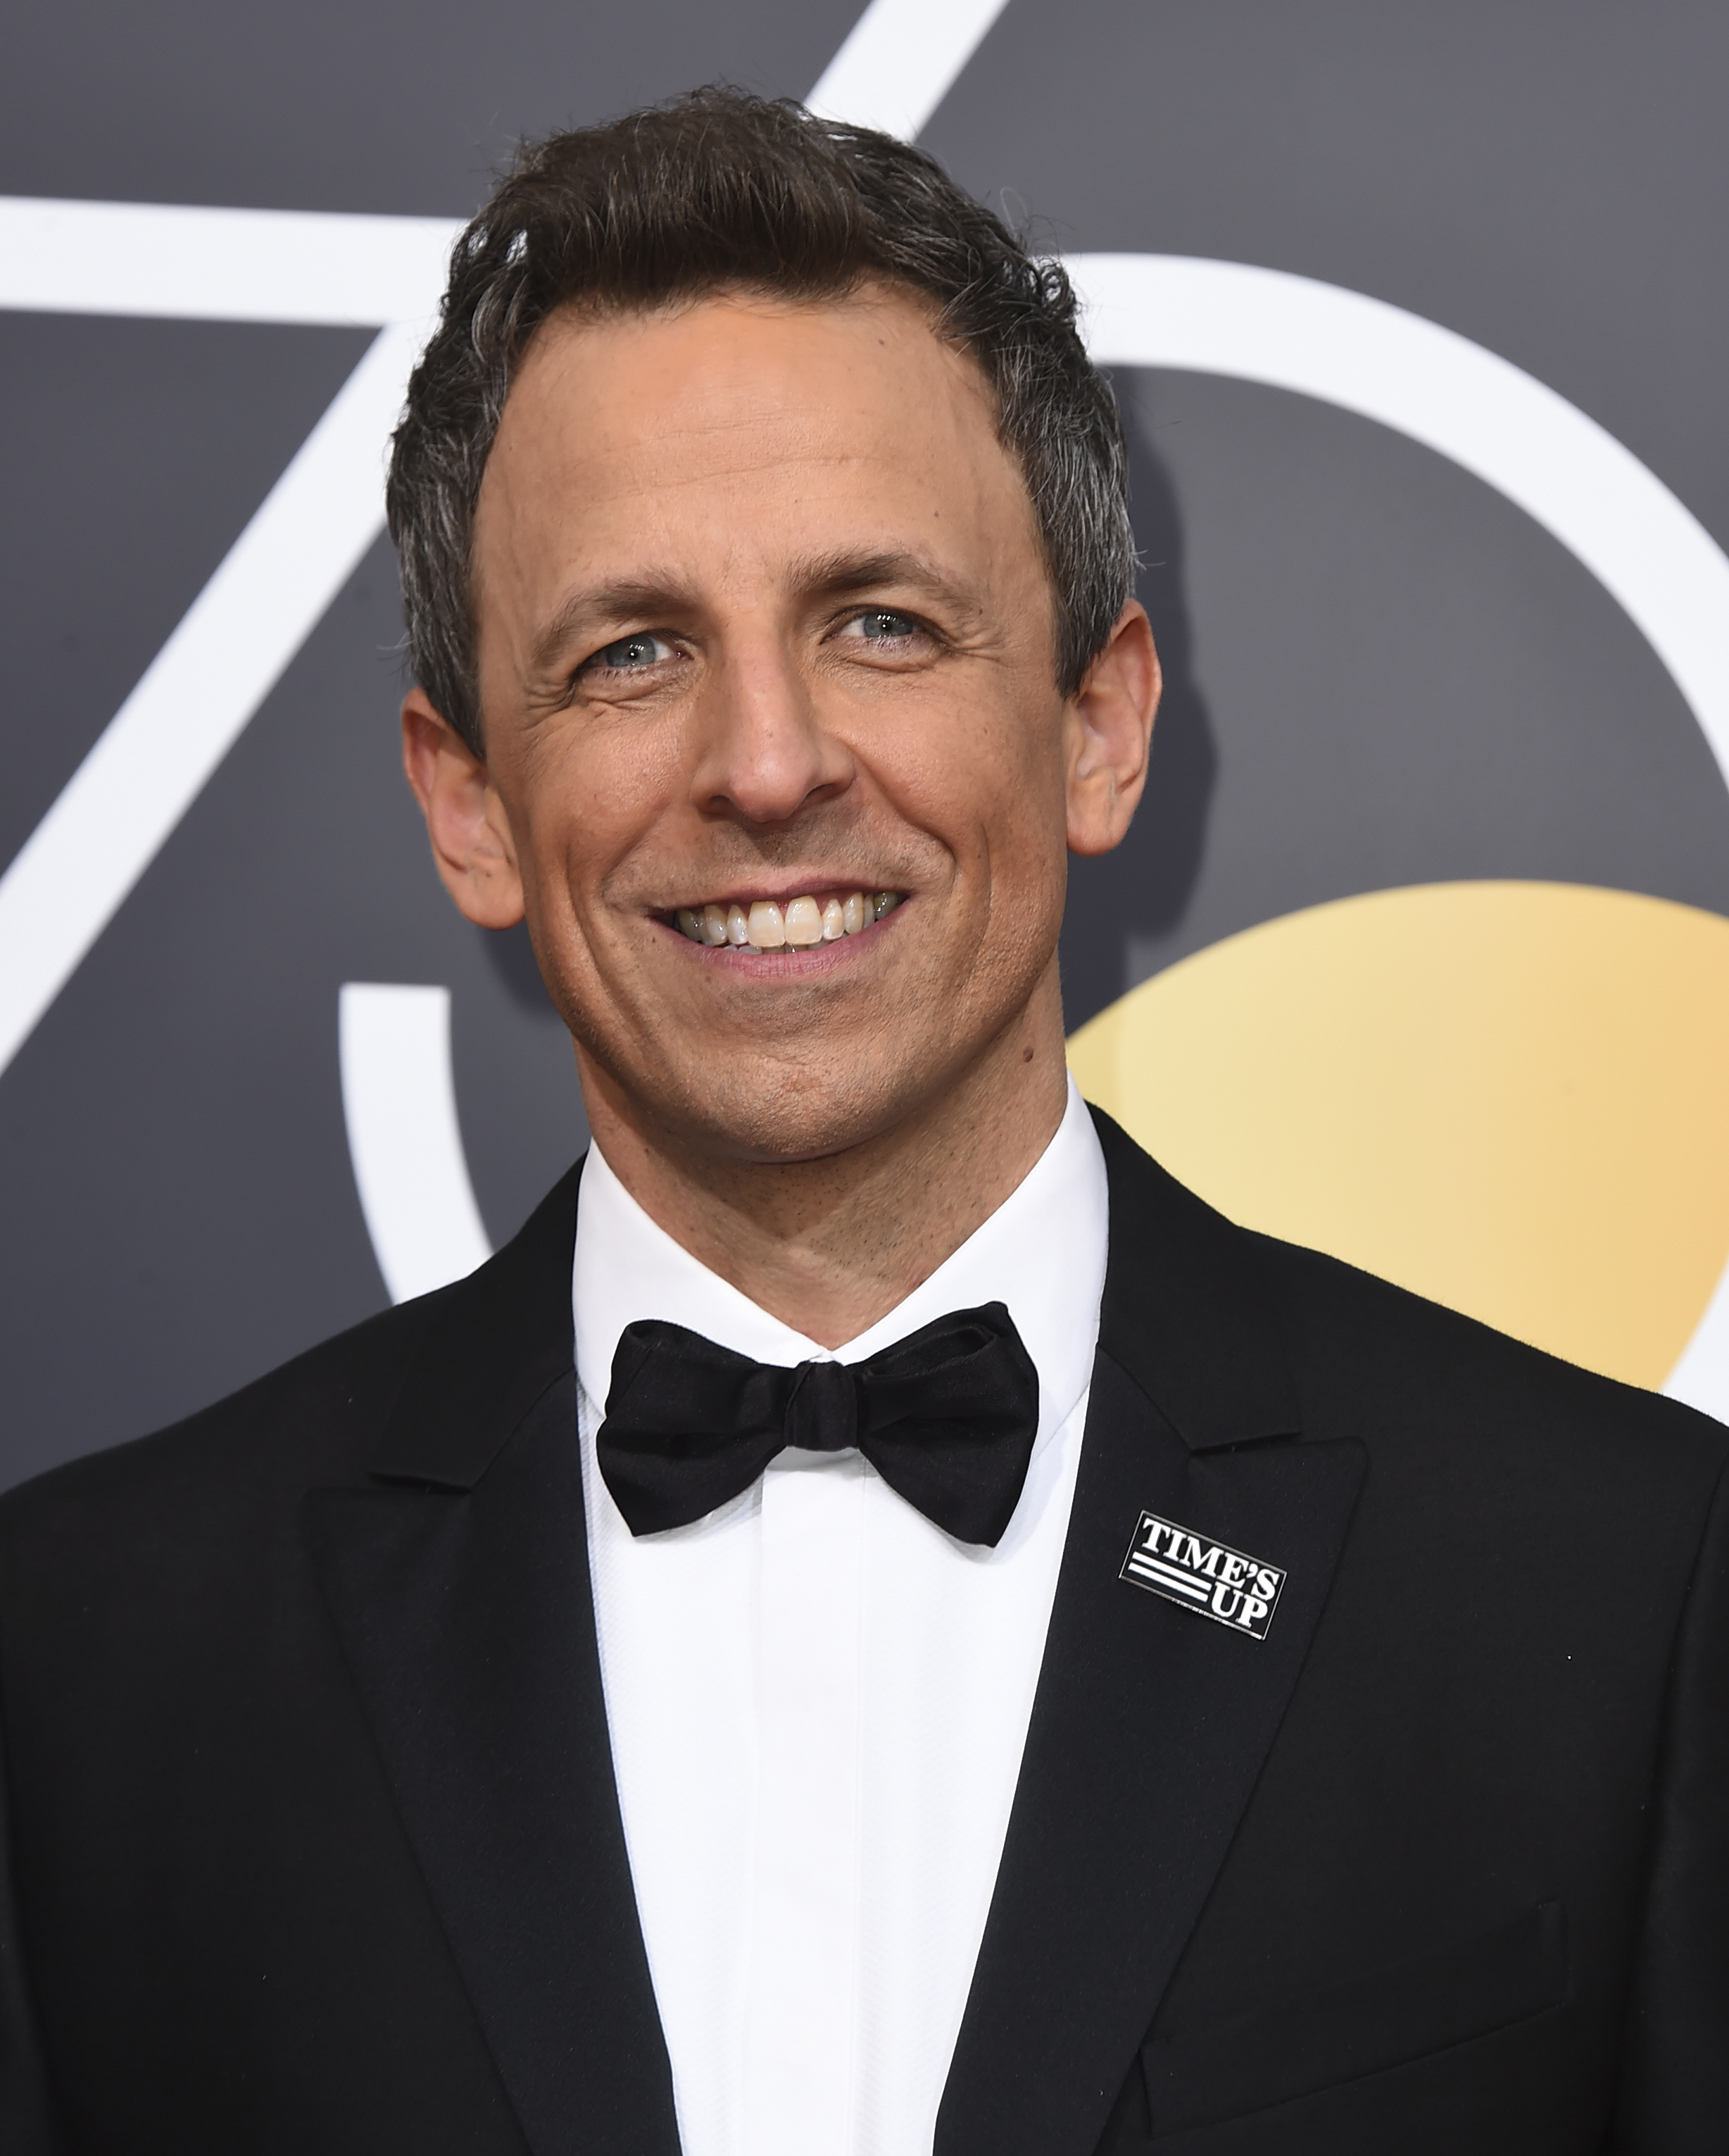 <div class='meta'><div class='origin-logo' data-origin='AP'></div><span class='caption-text' data-credit='Jordan Strauss/Invision/AP'>Seth Meyers arrives at the 75th annual Golden Globe Awards at the Beverly Hilton Hotel on Sunday, Jan. 7, 2018, in Beverly Hills, Calif.</span></div>